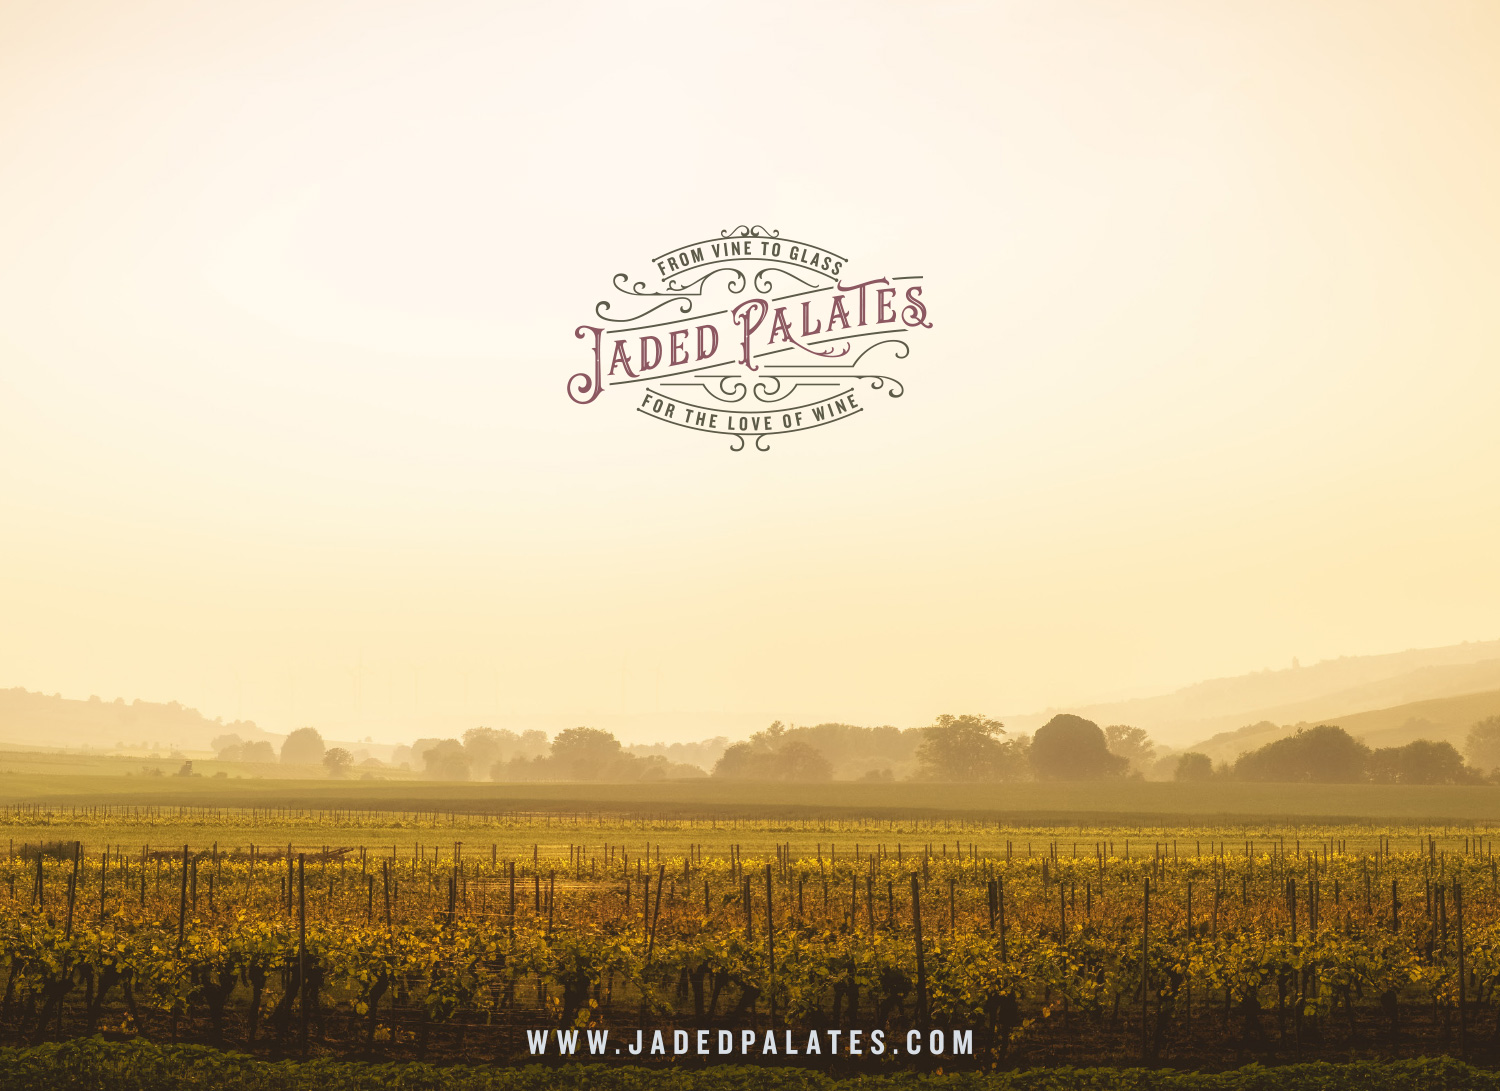 Jaded Palates, independent wine merchant in Devon, logo design and branding by Ditto Creative, boutique branding agency Kent